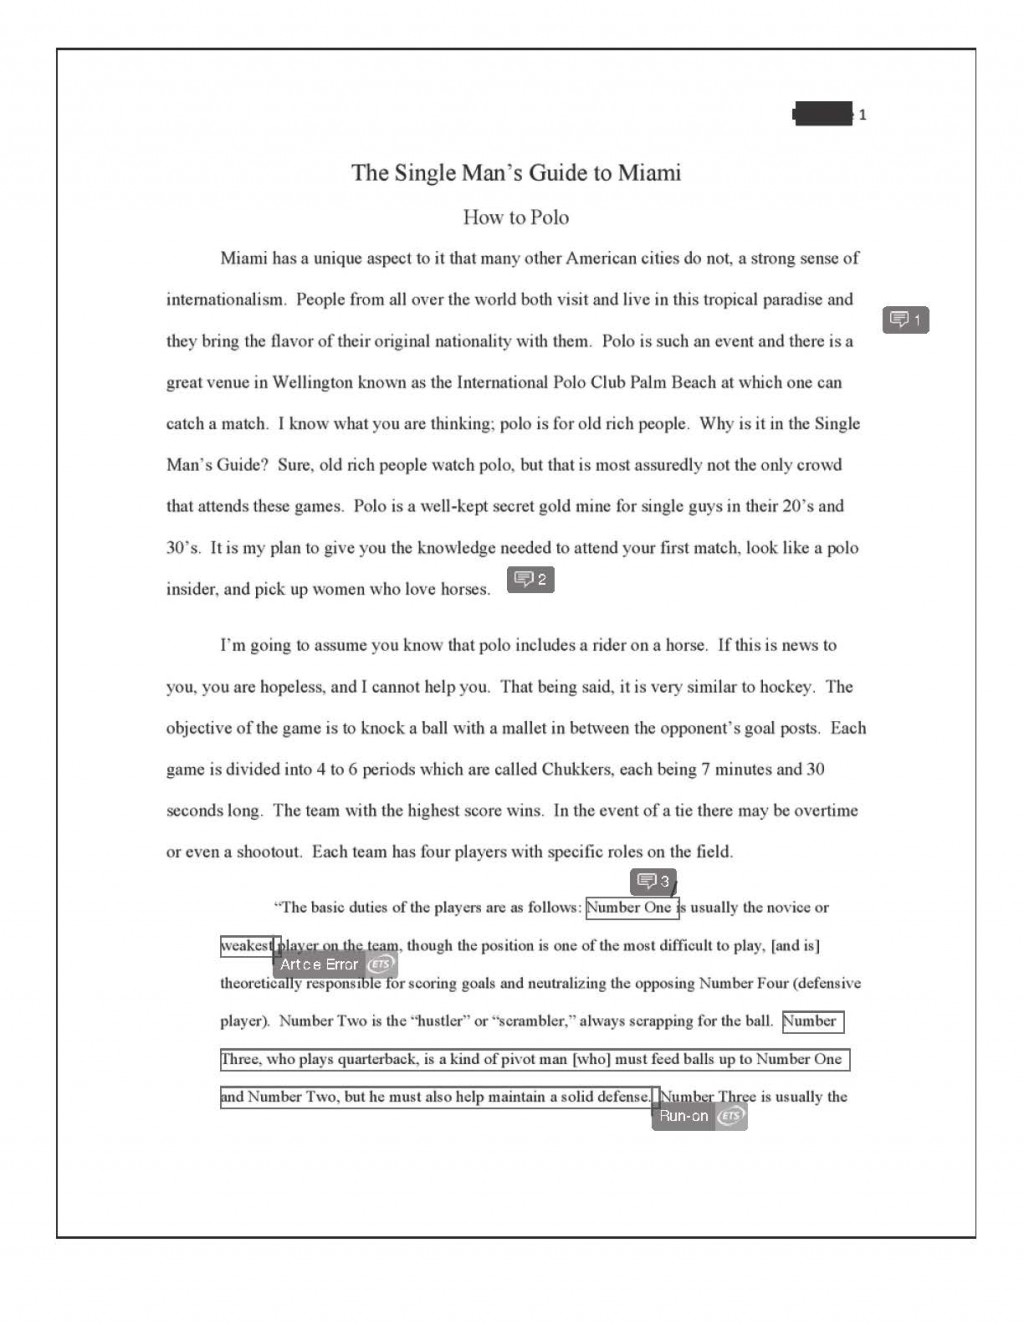 010 American Dream Argumentative Essay The Essays Is Gatsby Great What Still Alive Informative Final How To Polo Redacted P Attainable Argument Prompt Topics Marvelous Examples Large